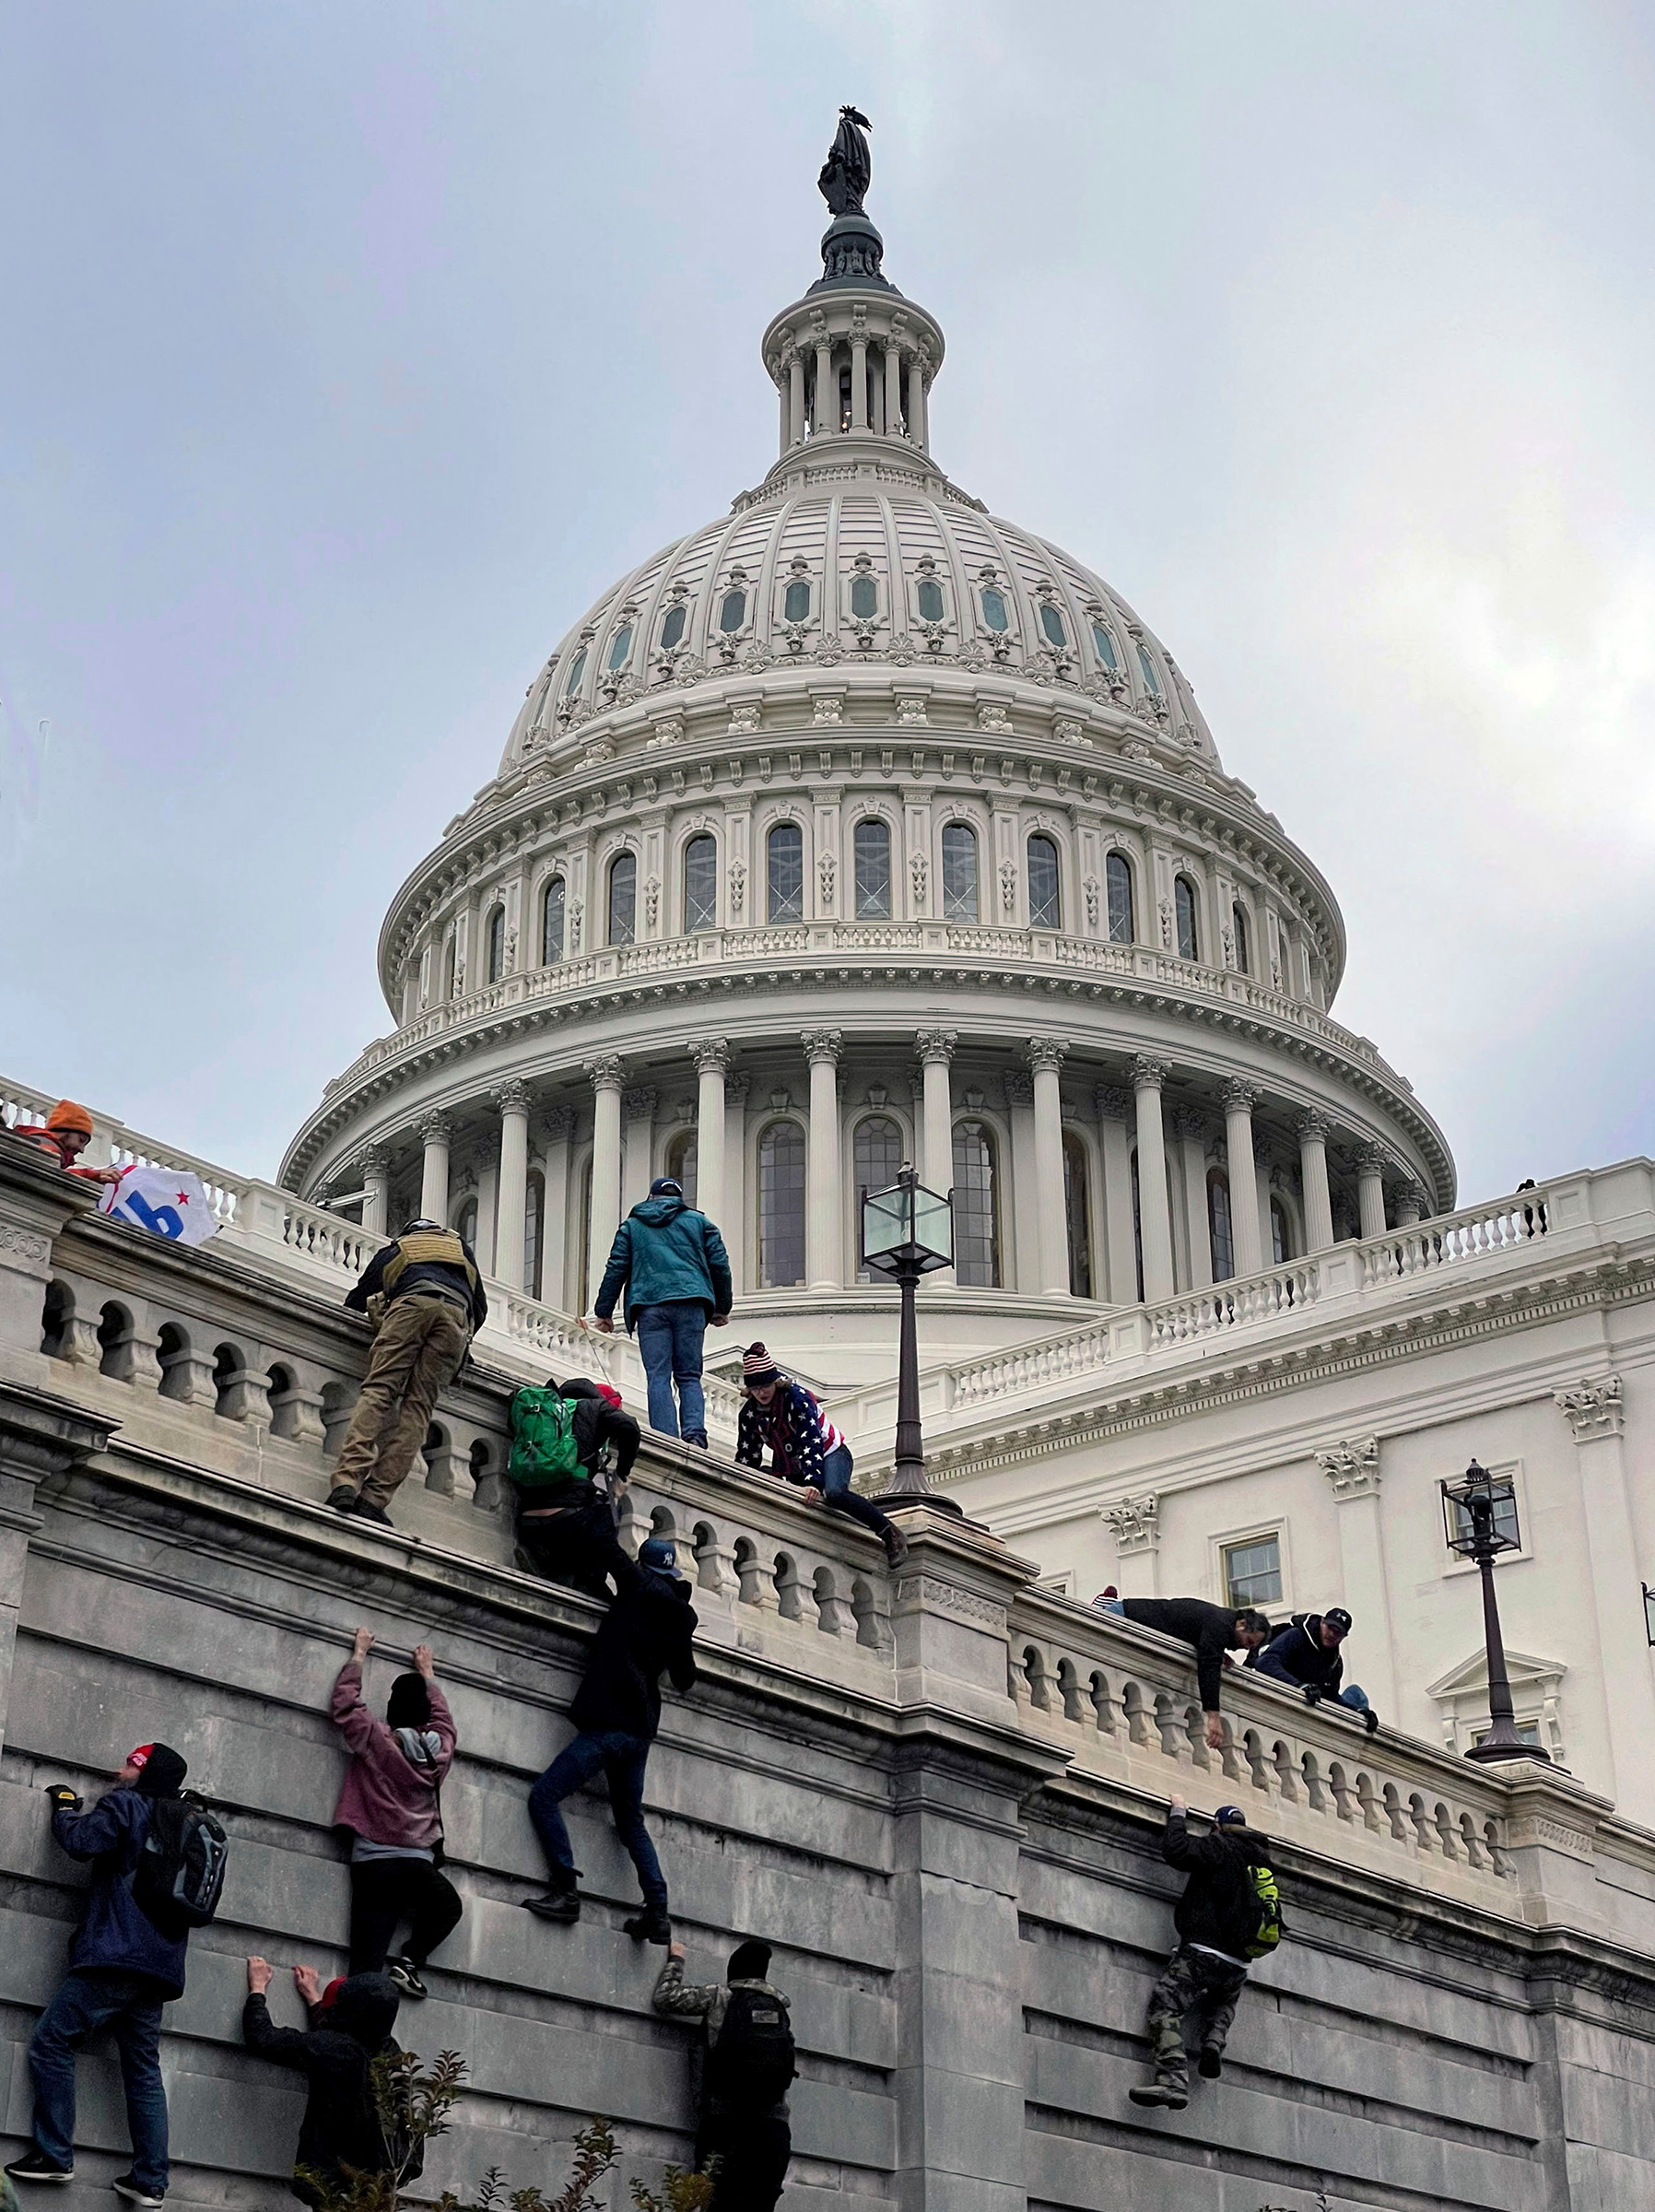 On Jan 6, The United States Capitol Building in Washington, D.C. was breached by thousands of protesters during a  Stop The Steal  rally in support of President Donald Trump during the worldwide coronavirus pandemic.